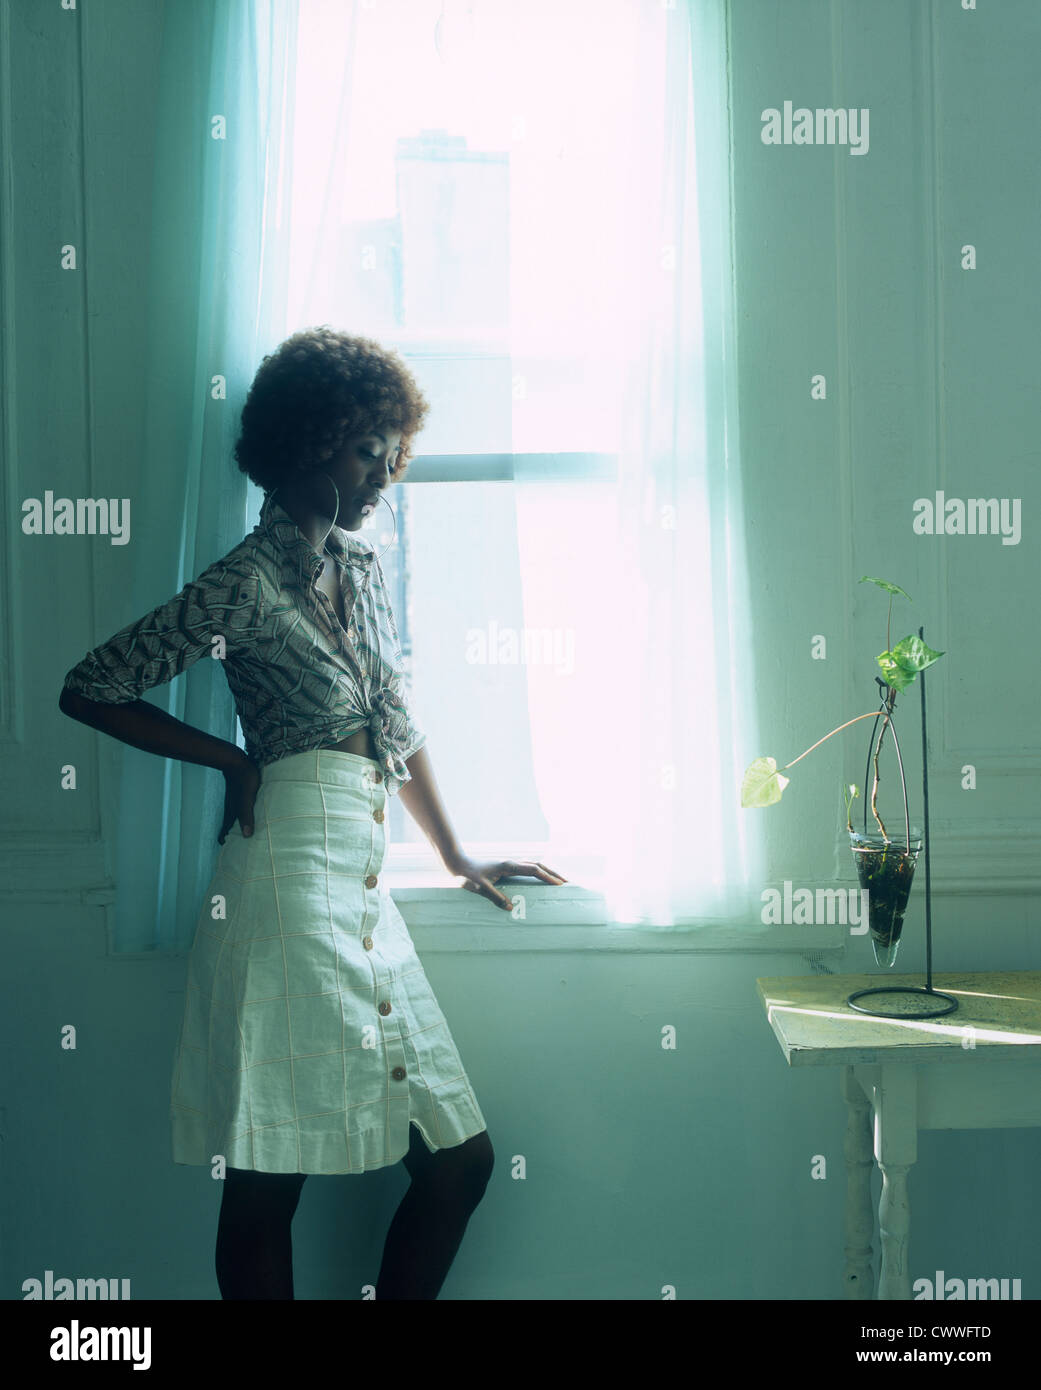 1970s style Black American woman with short red hued afro in window - Stock Image